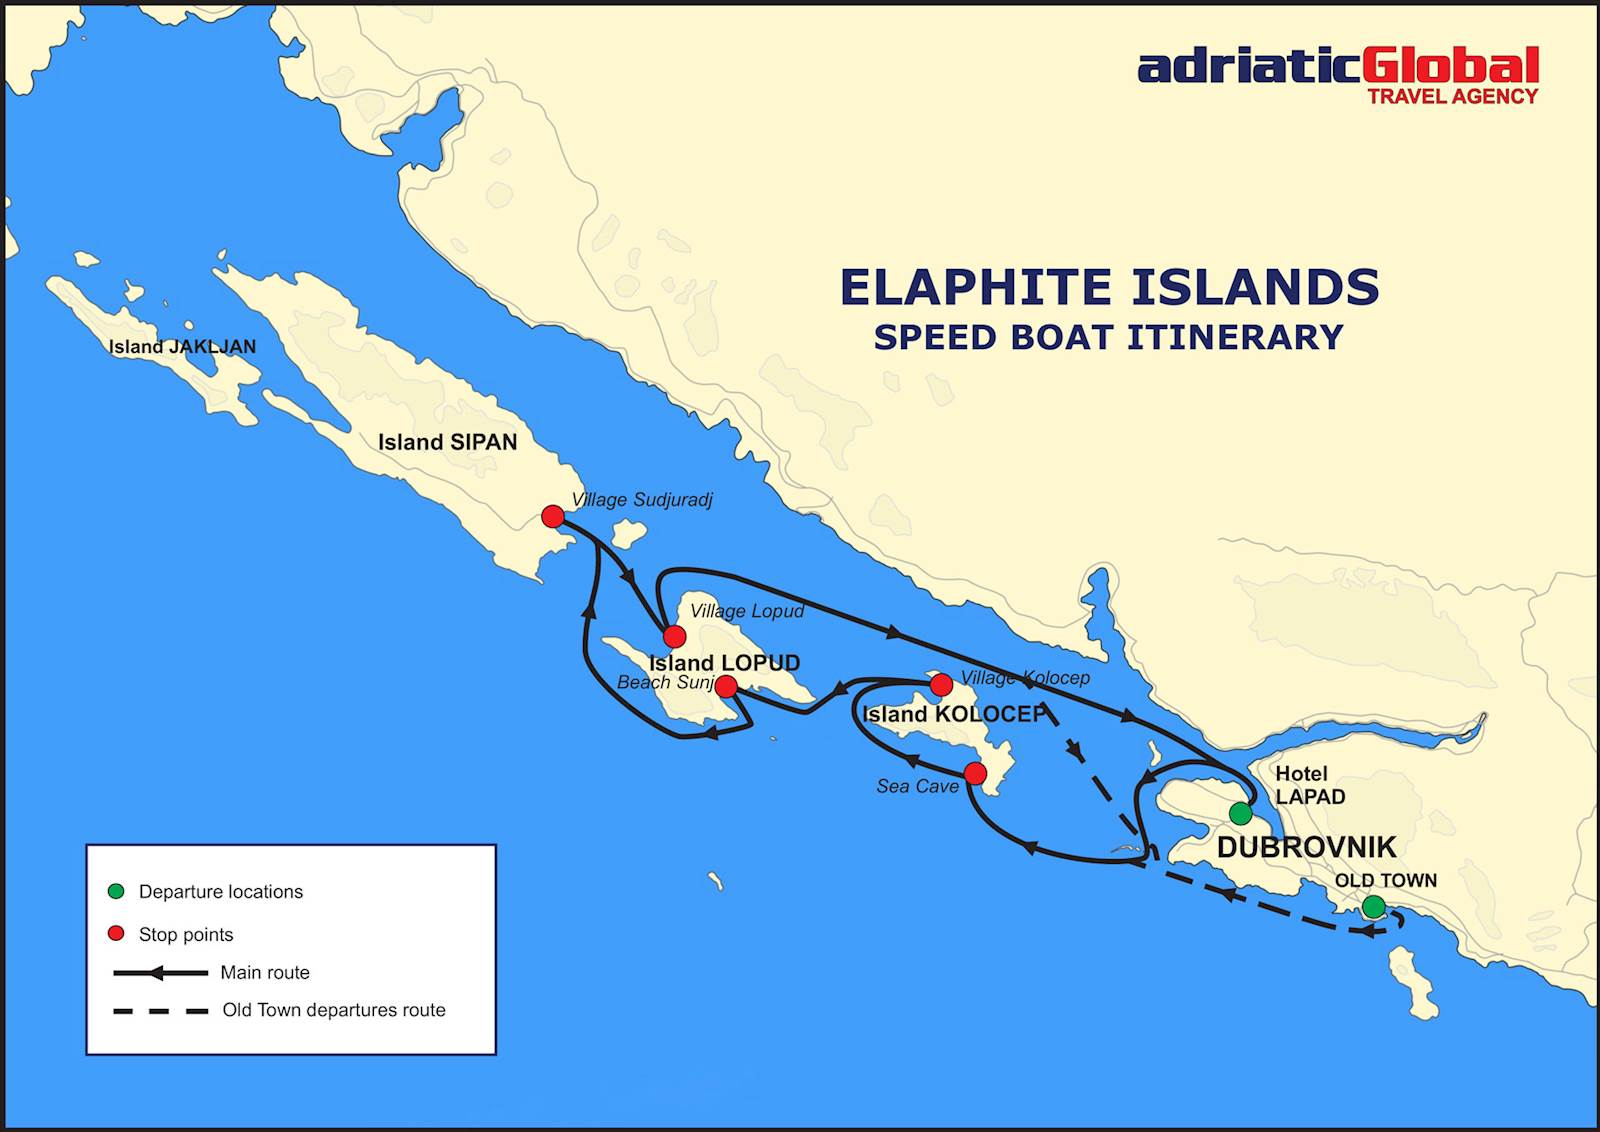 -images-excursions-elaphite-islands-speed-boat-excursion-zzz-elaphite_islands_private_boat_tour_itinerary_map.jpg